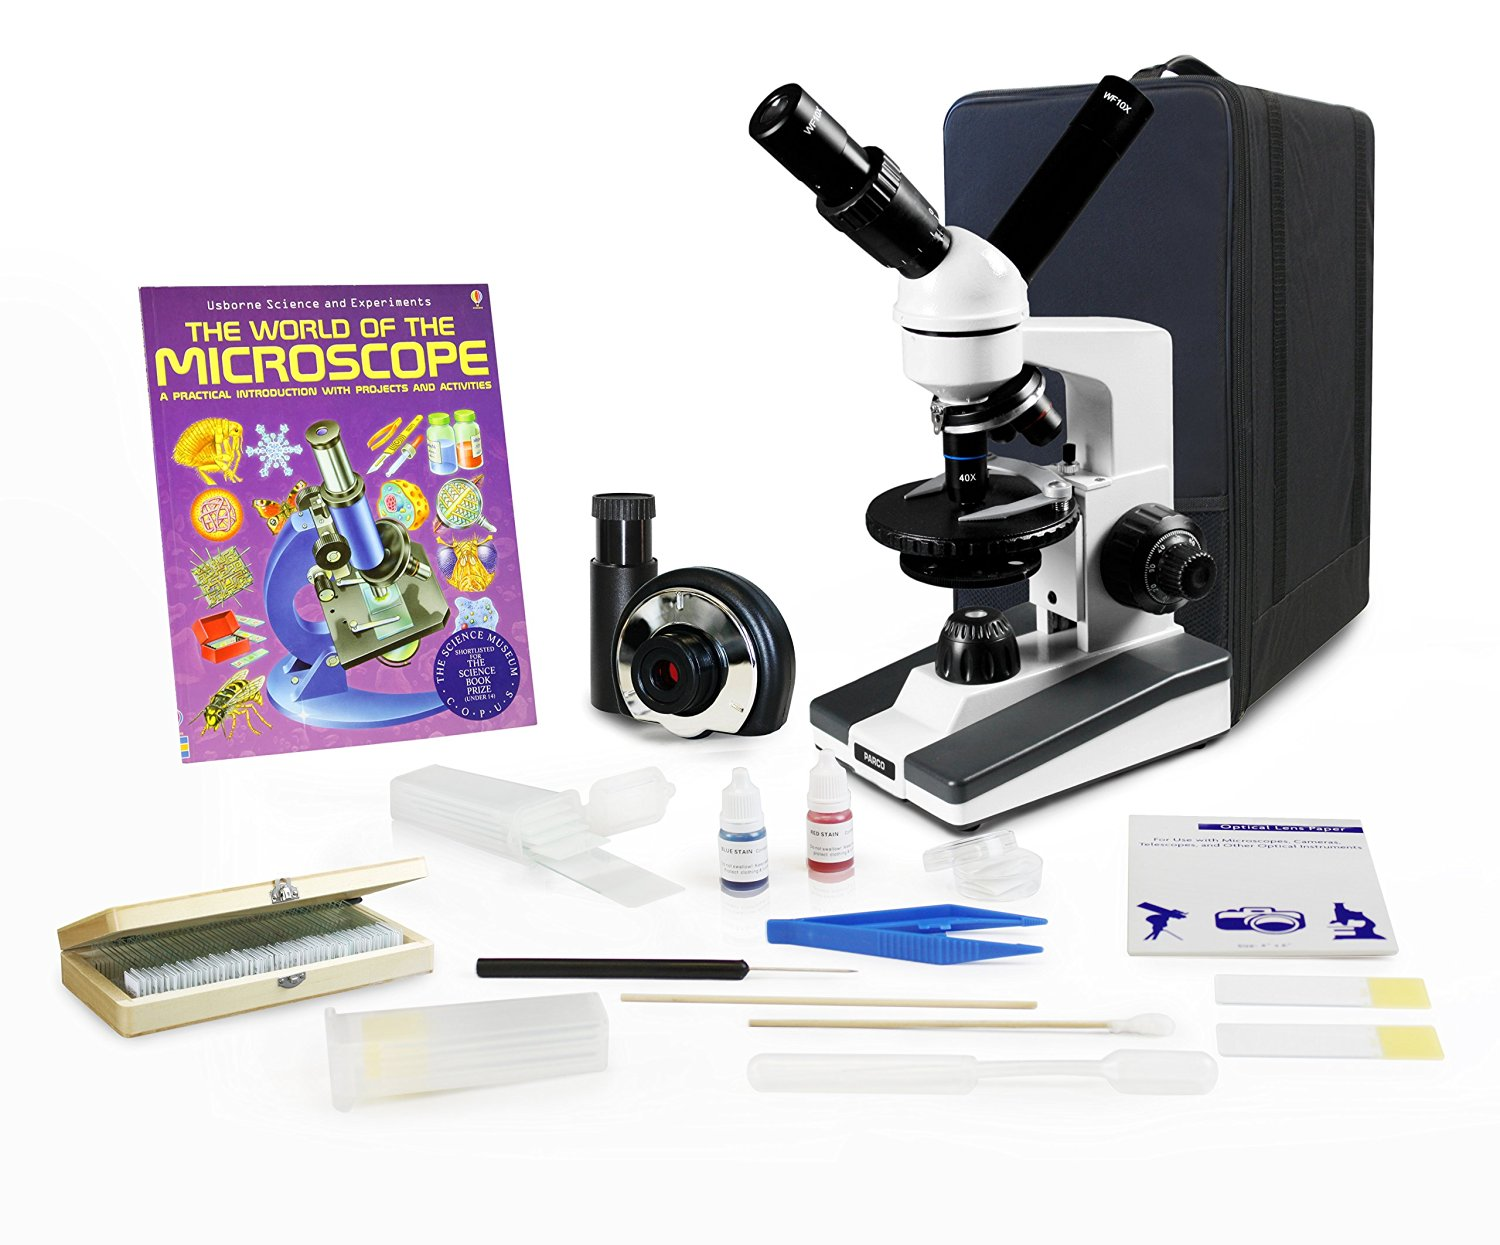 Parco Scientific Dual View Elementary Level Microscope, Rechargeable Battery, Microscope Book, Microscope Discovery Kit, 50 Prepared Slides Set, Microscope Carrying Case, Free Gift Package ($20 Value)